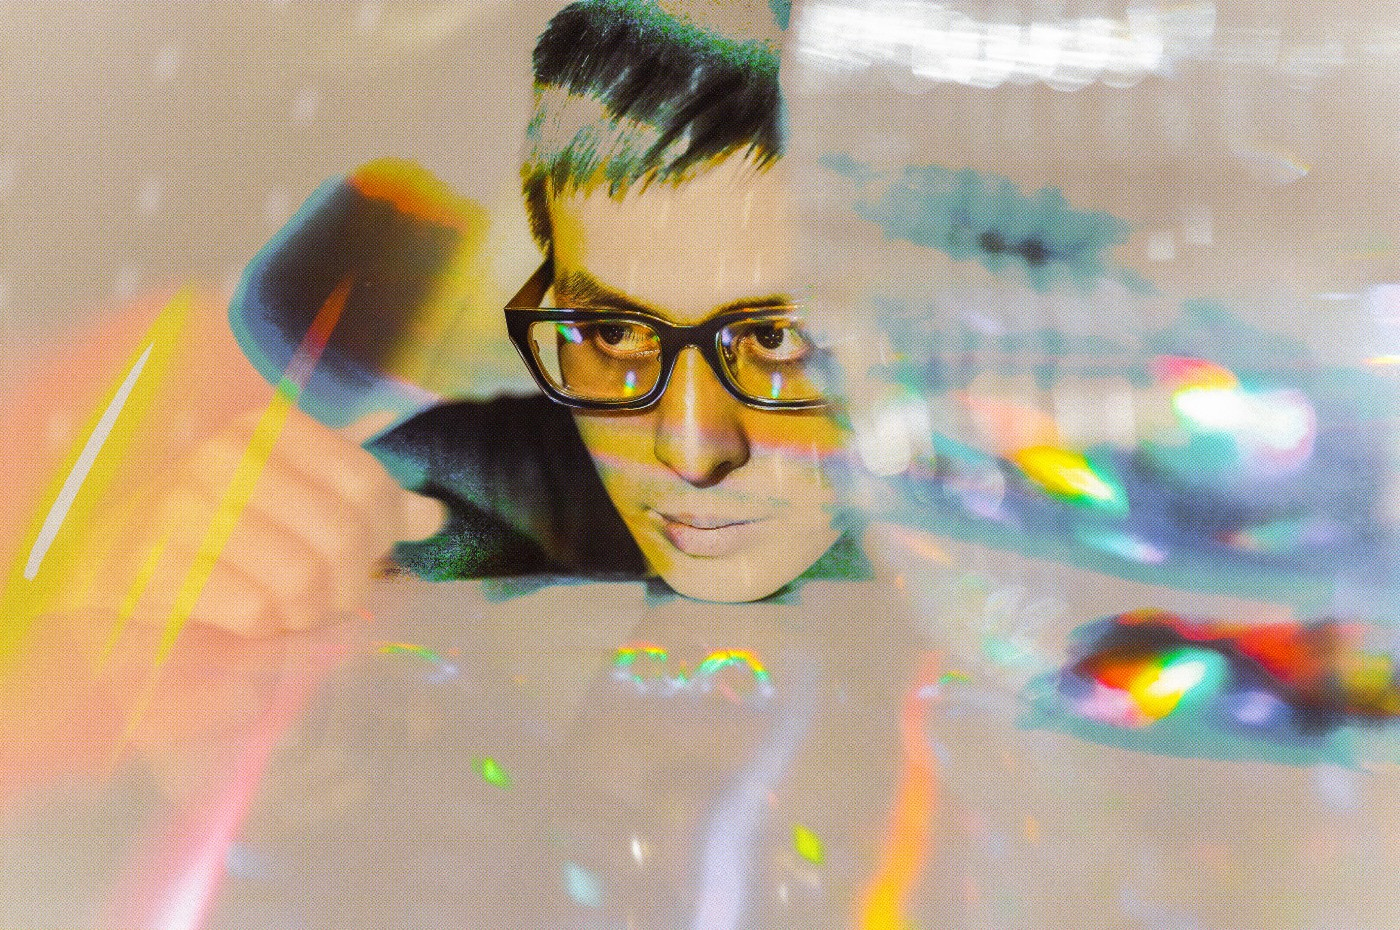 Photograph of a white, non-binary person wearing glasses with short hair. They are resting their chin on a table and look frustrated. The photo is abstract with blurry swipes, dots and other shapes overlaid on the image.